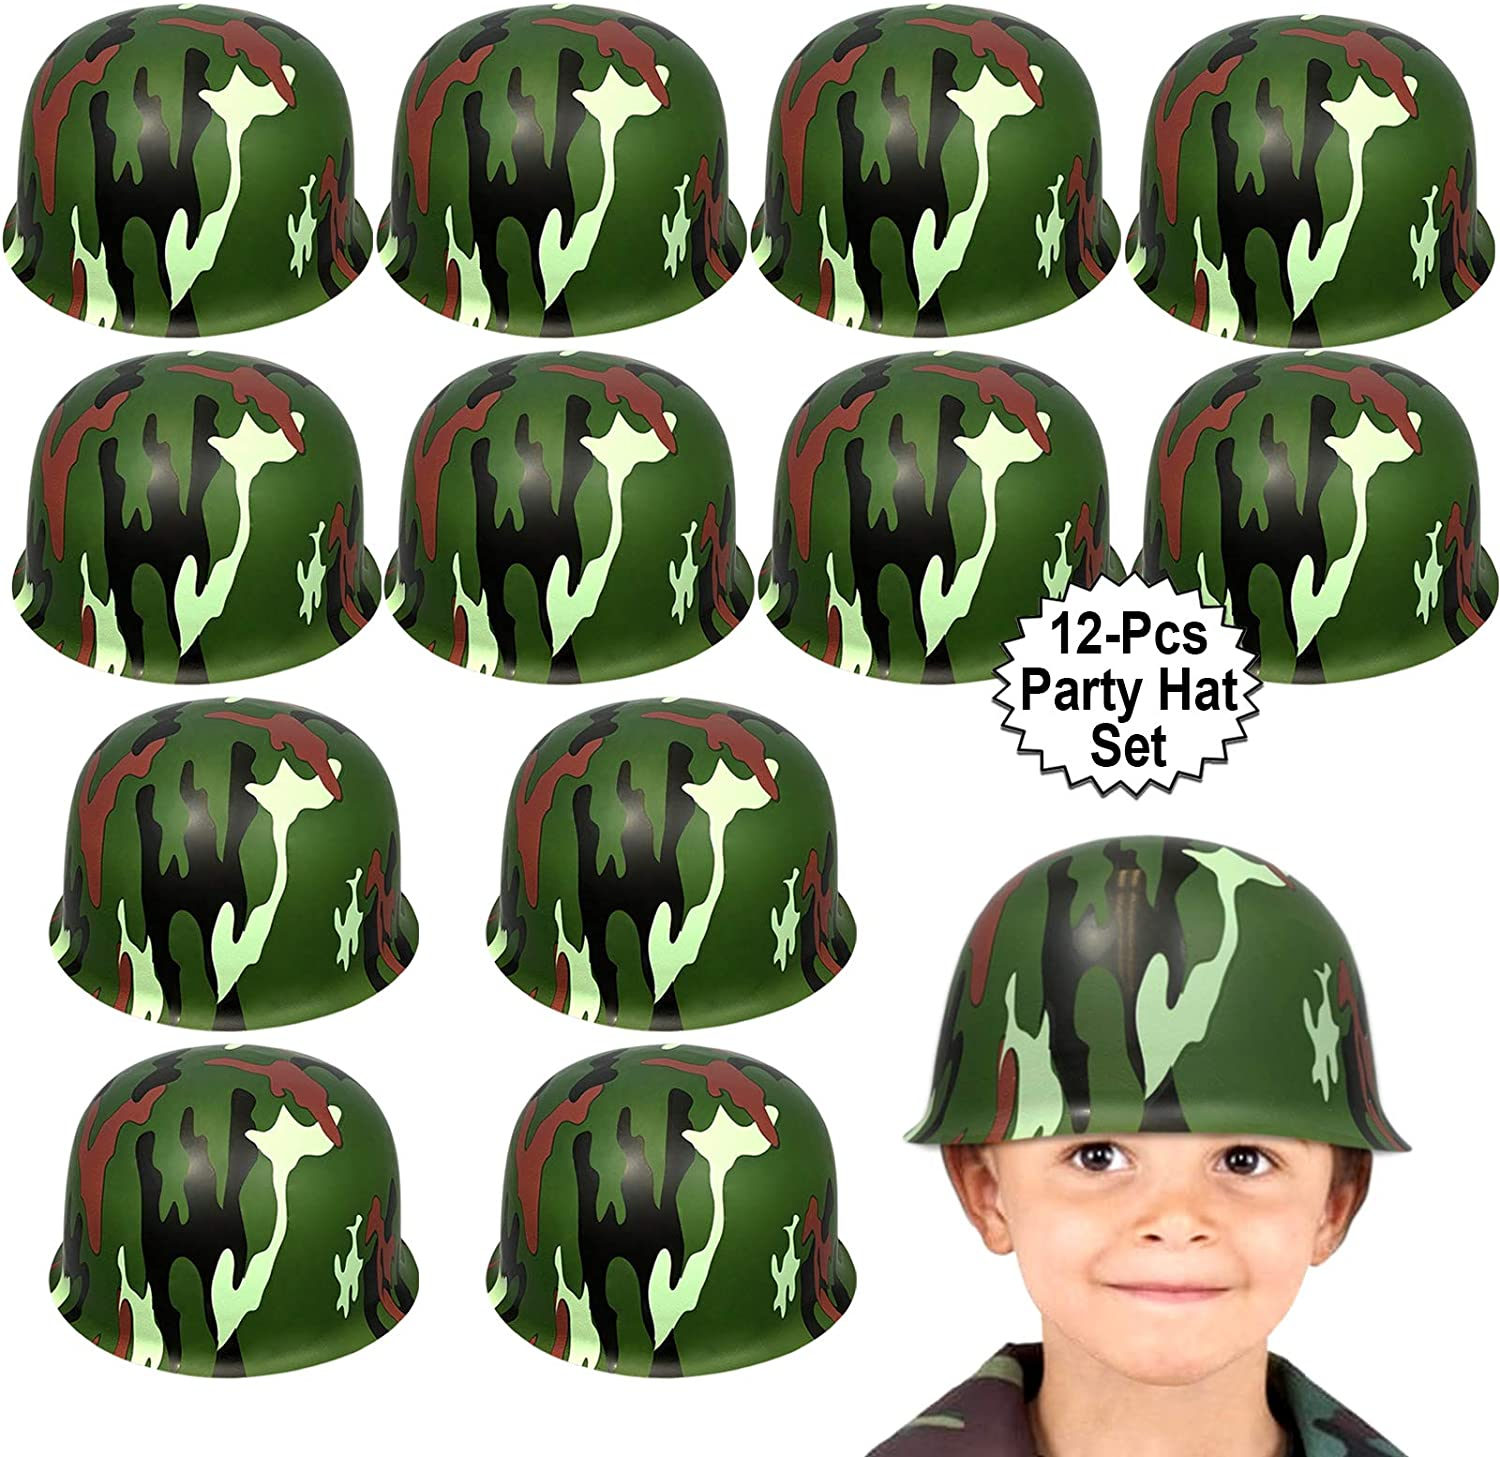 Anapoliz Army Helmets for Kids | 12 Count Plastic Camouflage Hats | Soldier Helmet Party Favors | Camo Costume Dress Up Hat